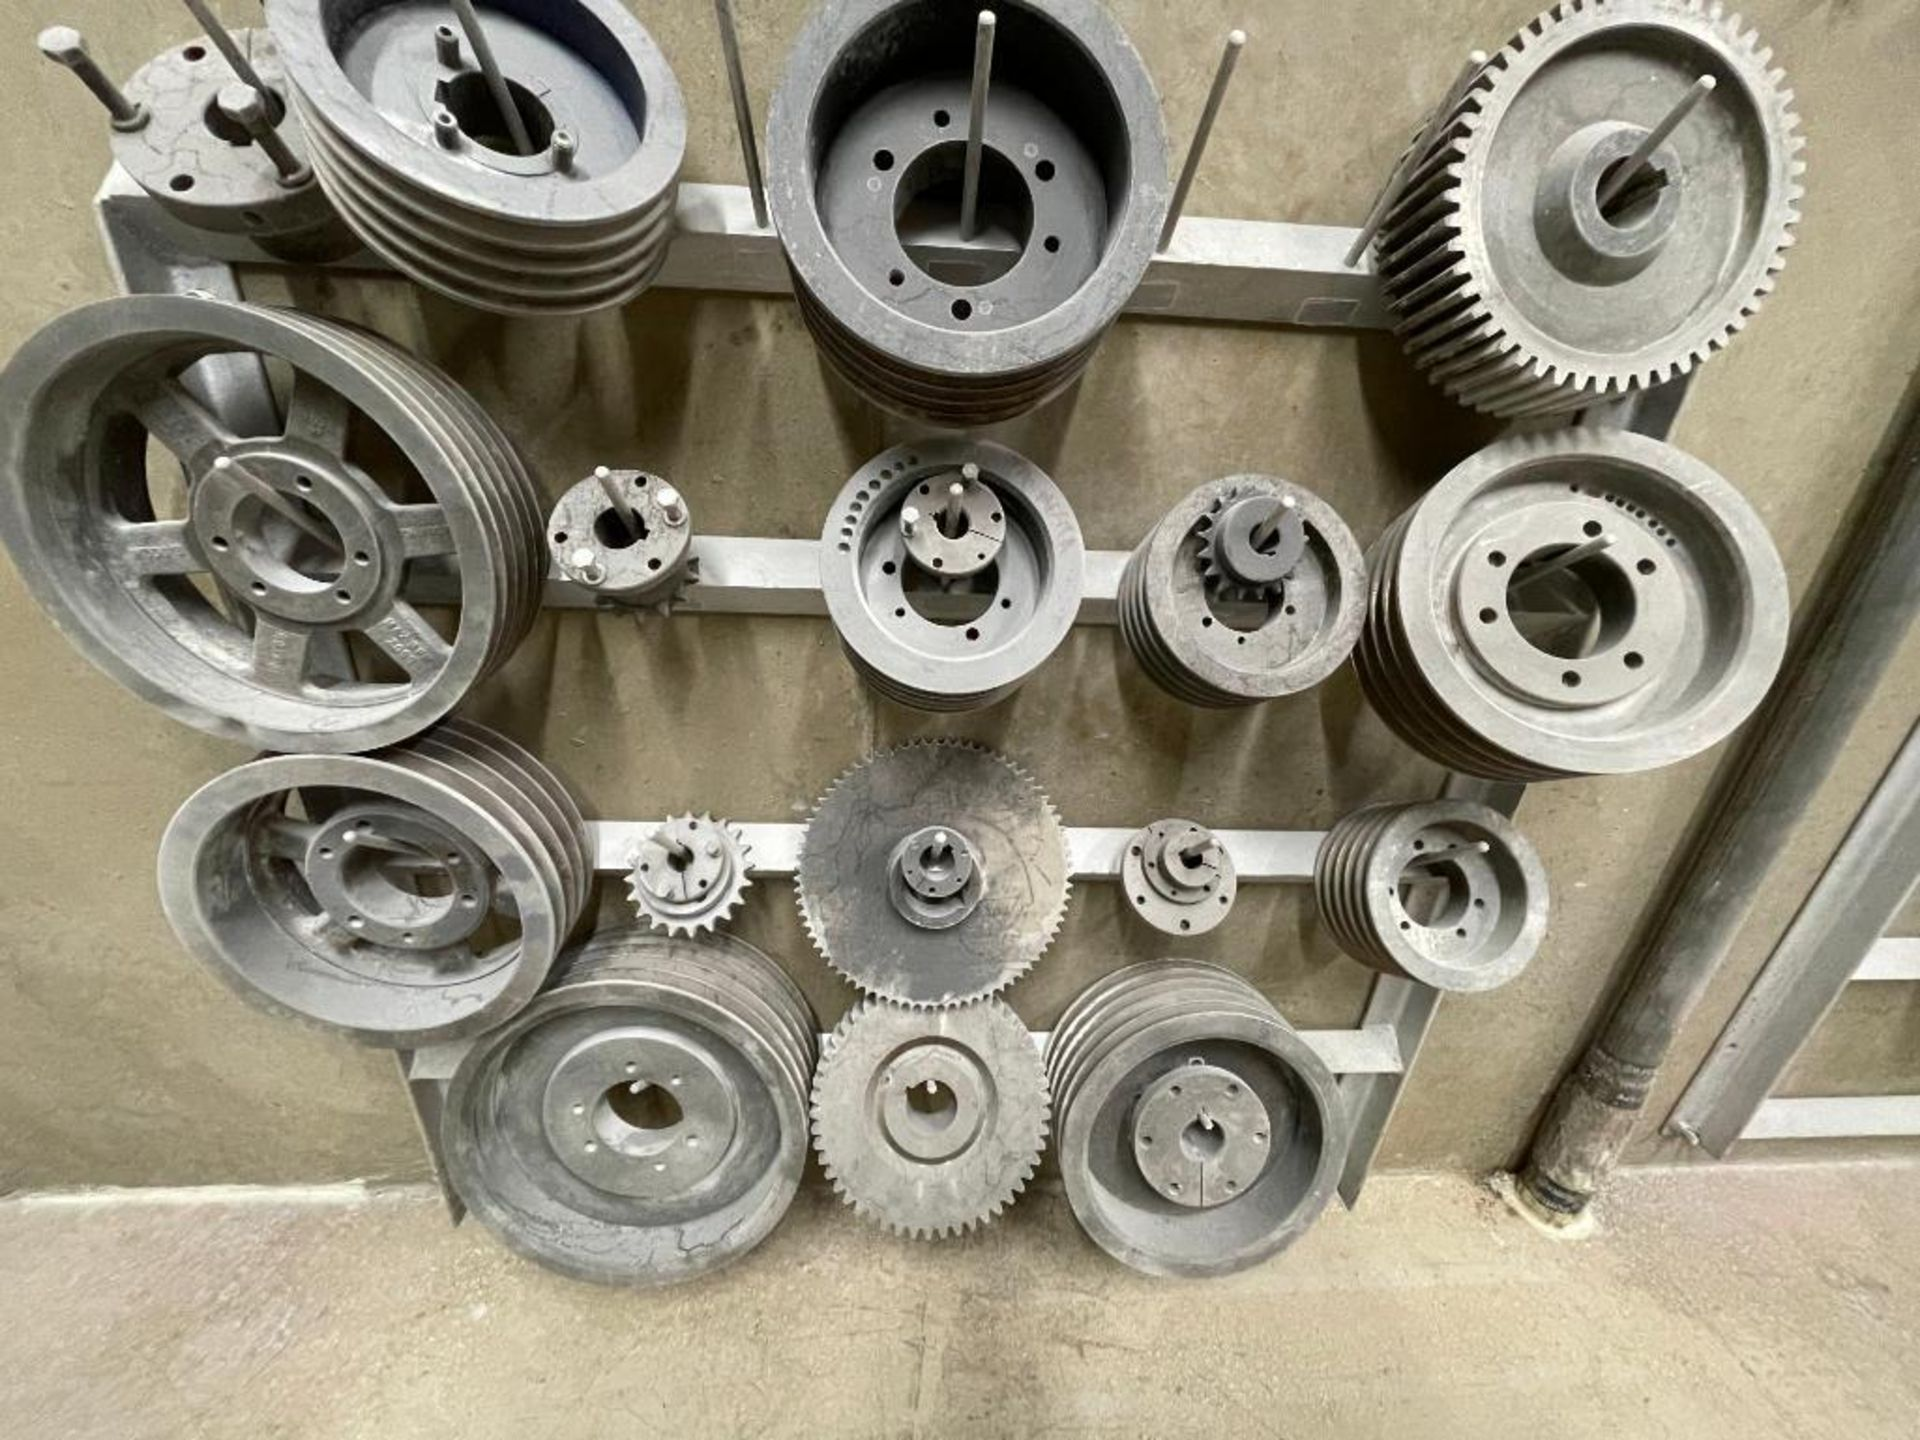 gears and pulleys - Image 8 of 17